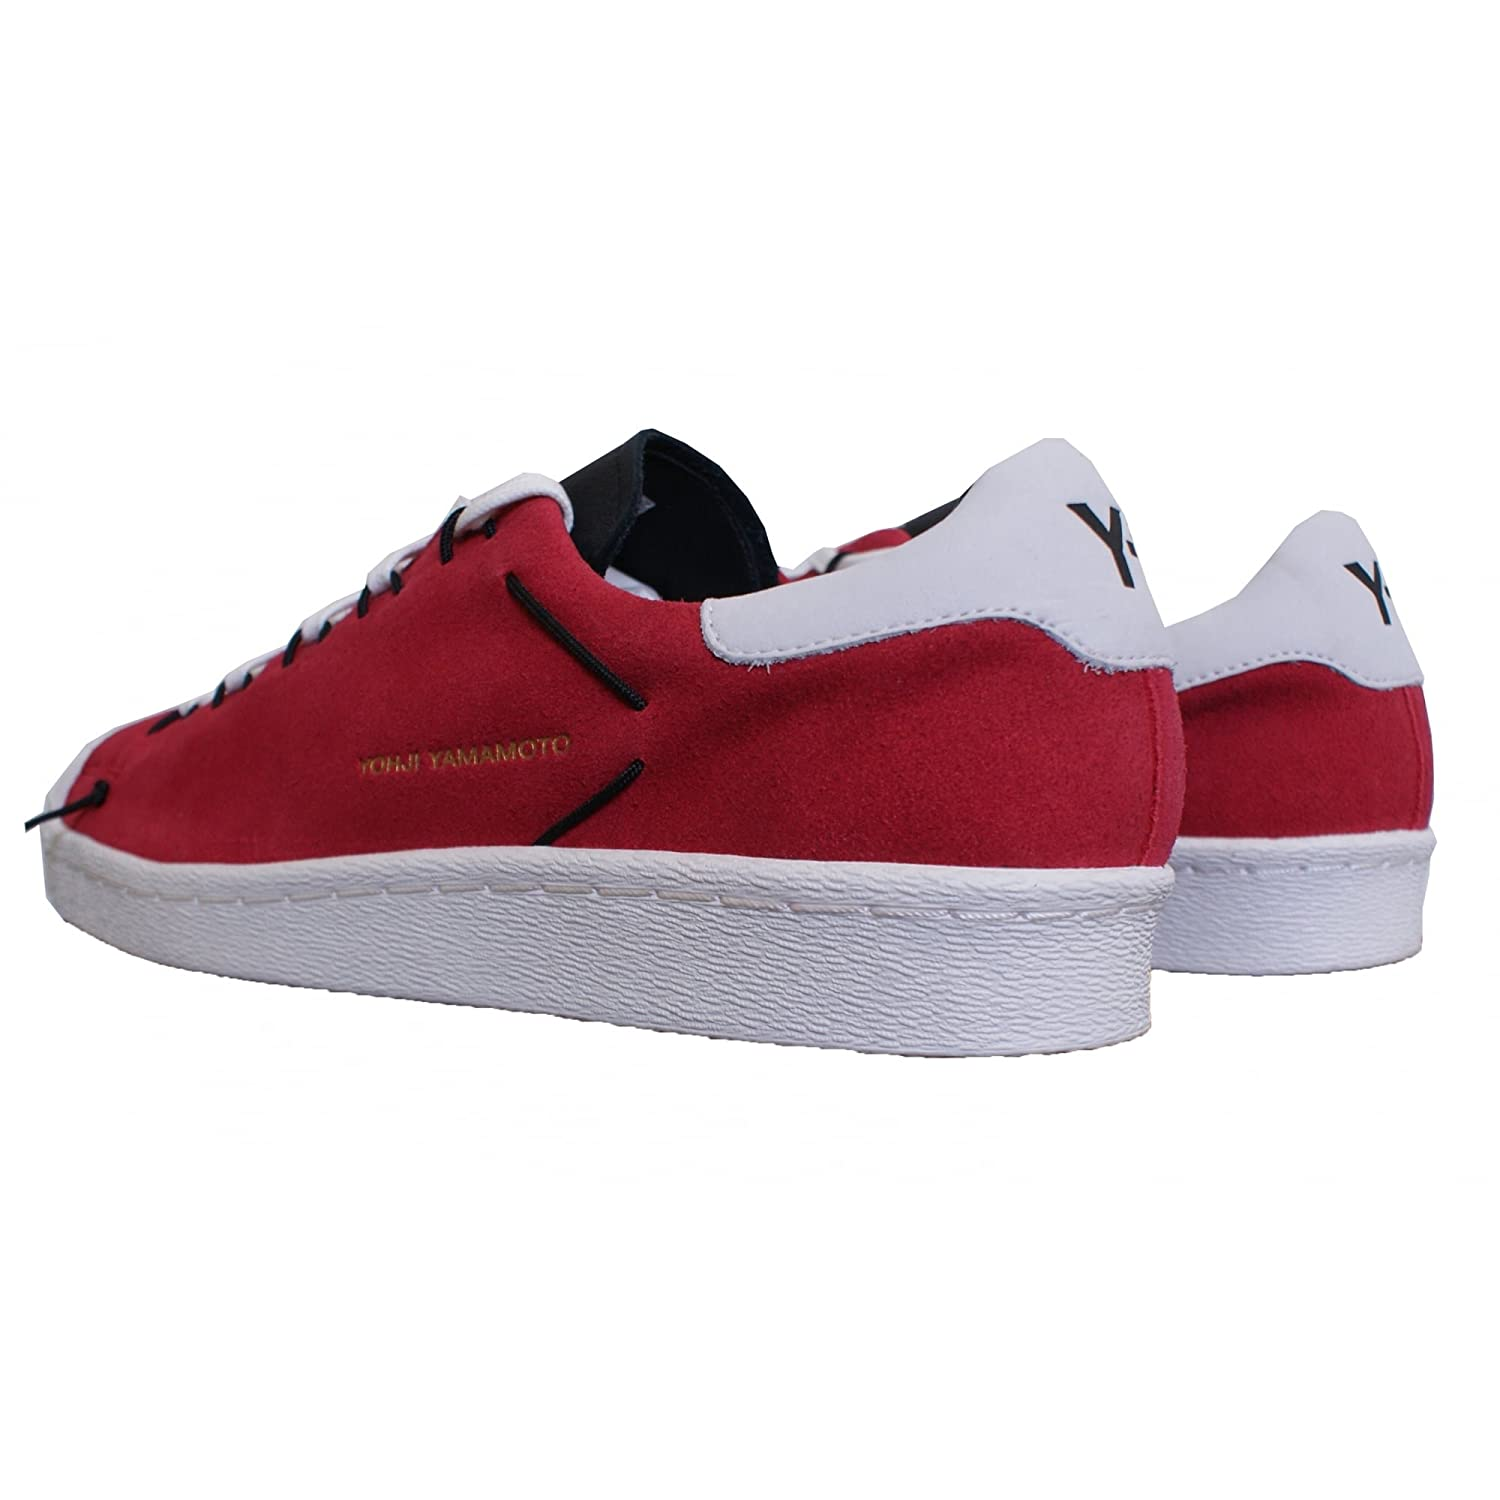 y3 super knot red- OFF 64% - www.butc